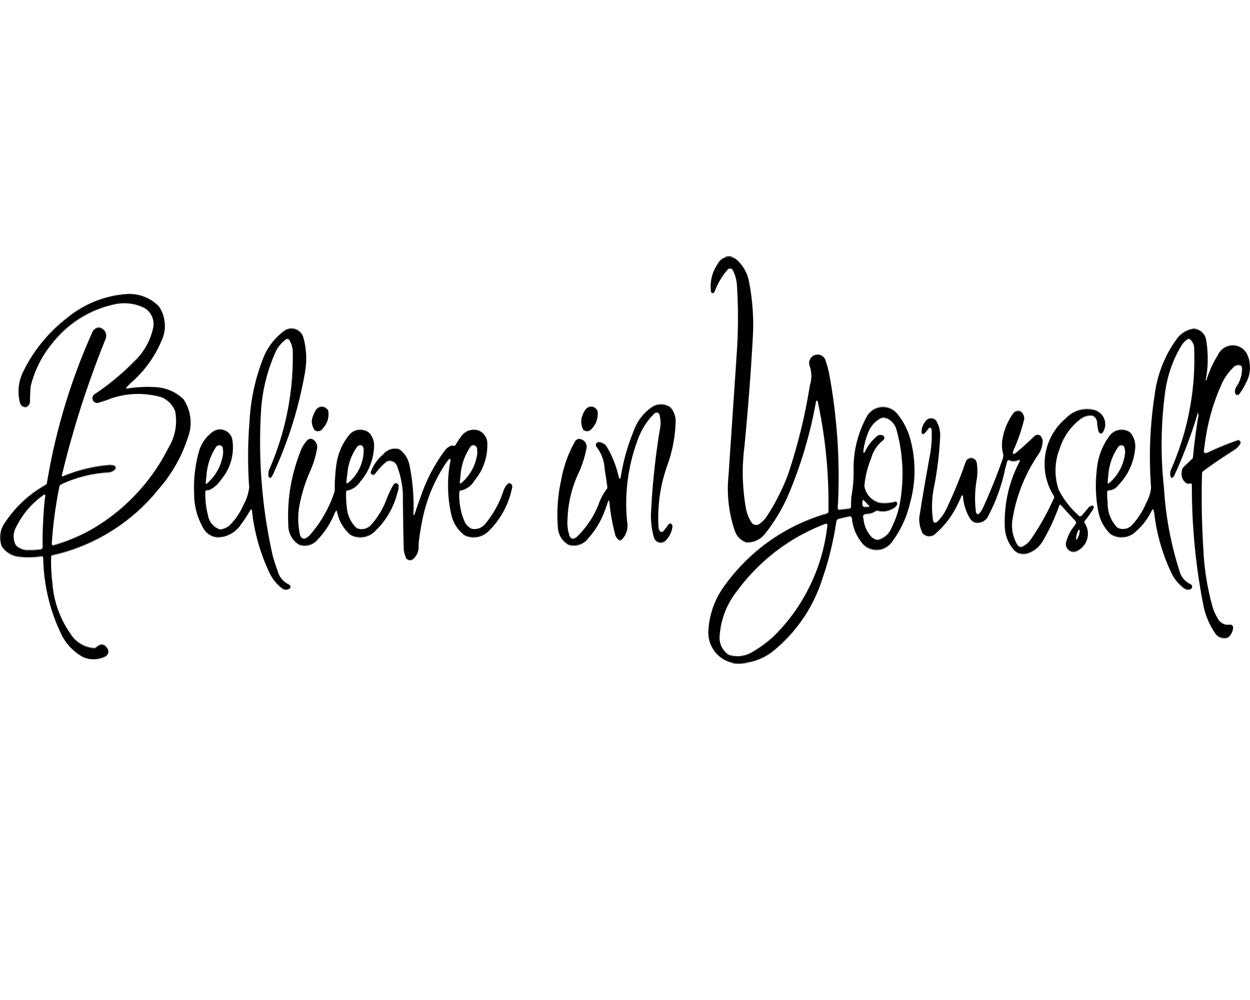 Believe in yourself decal wall quote sayings stickers quotes vinyl inspirational wall decals words letters amazon com